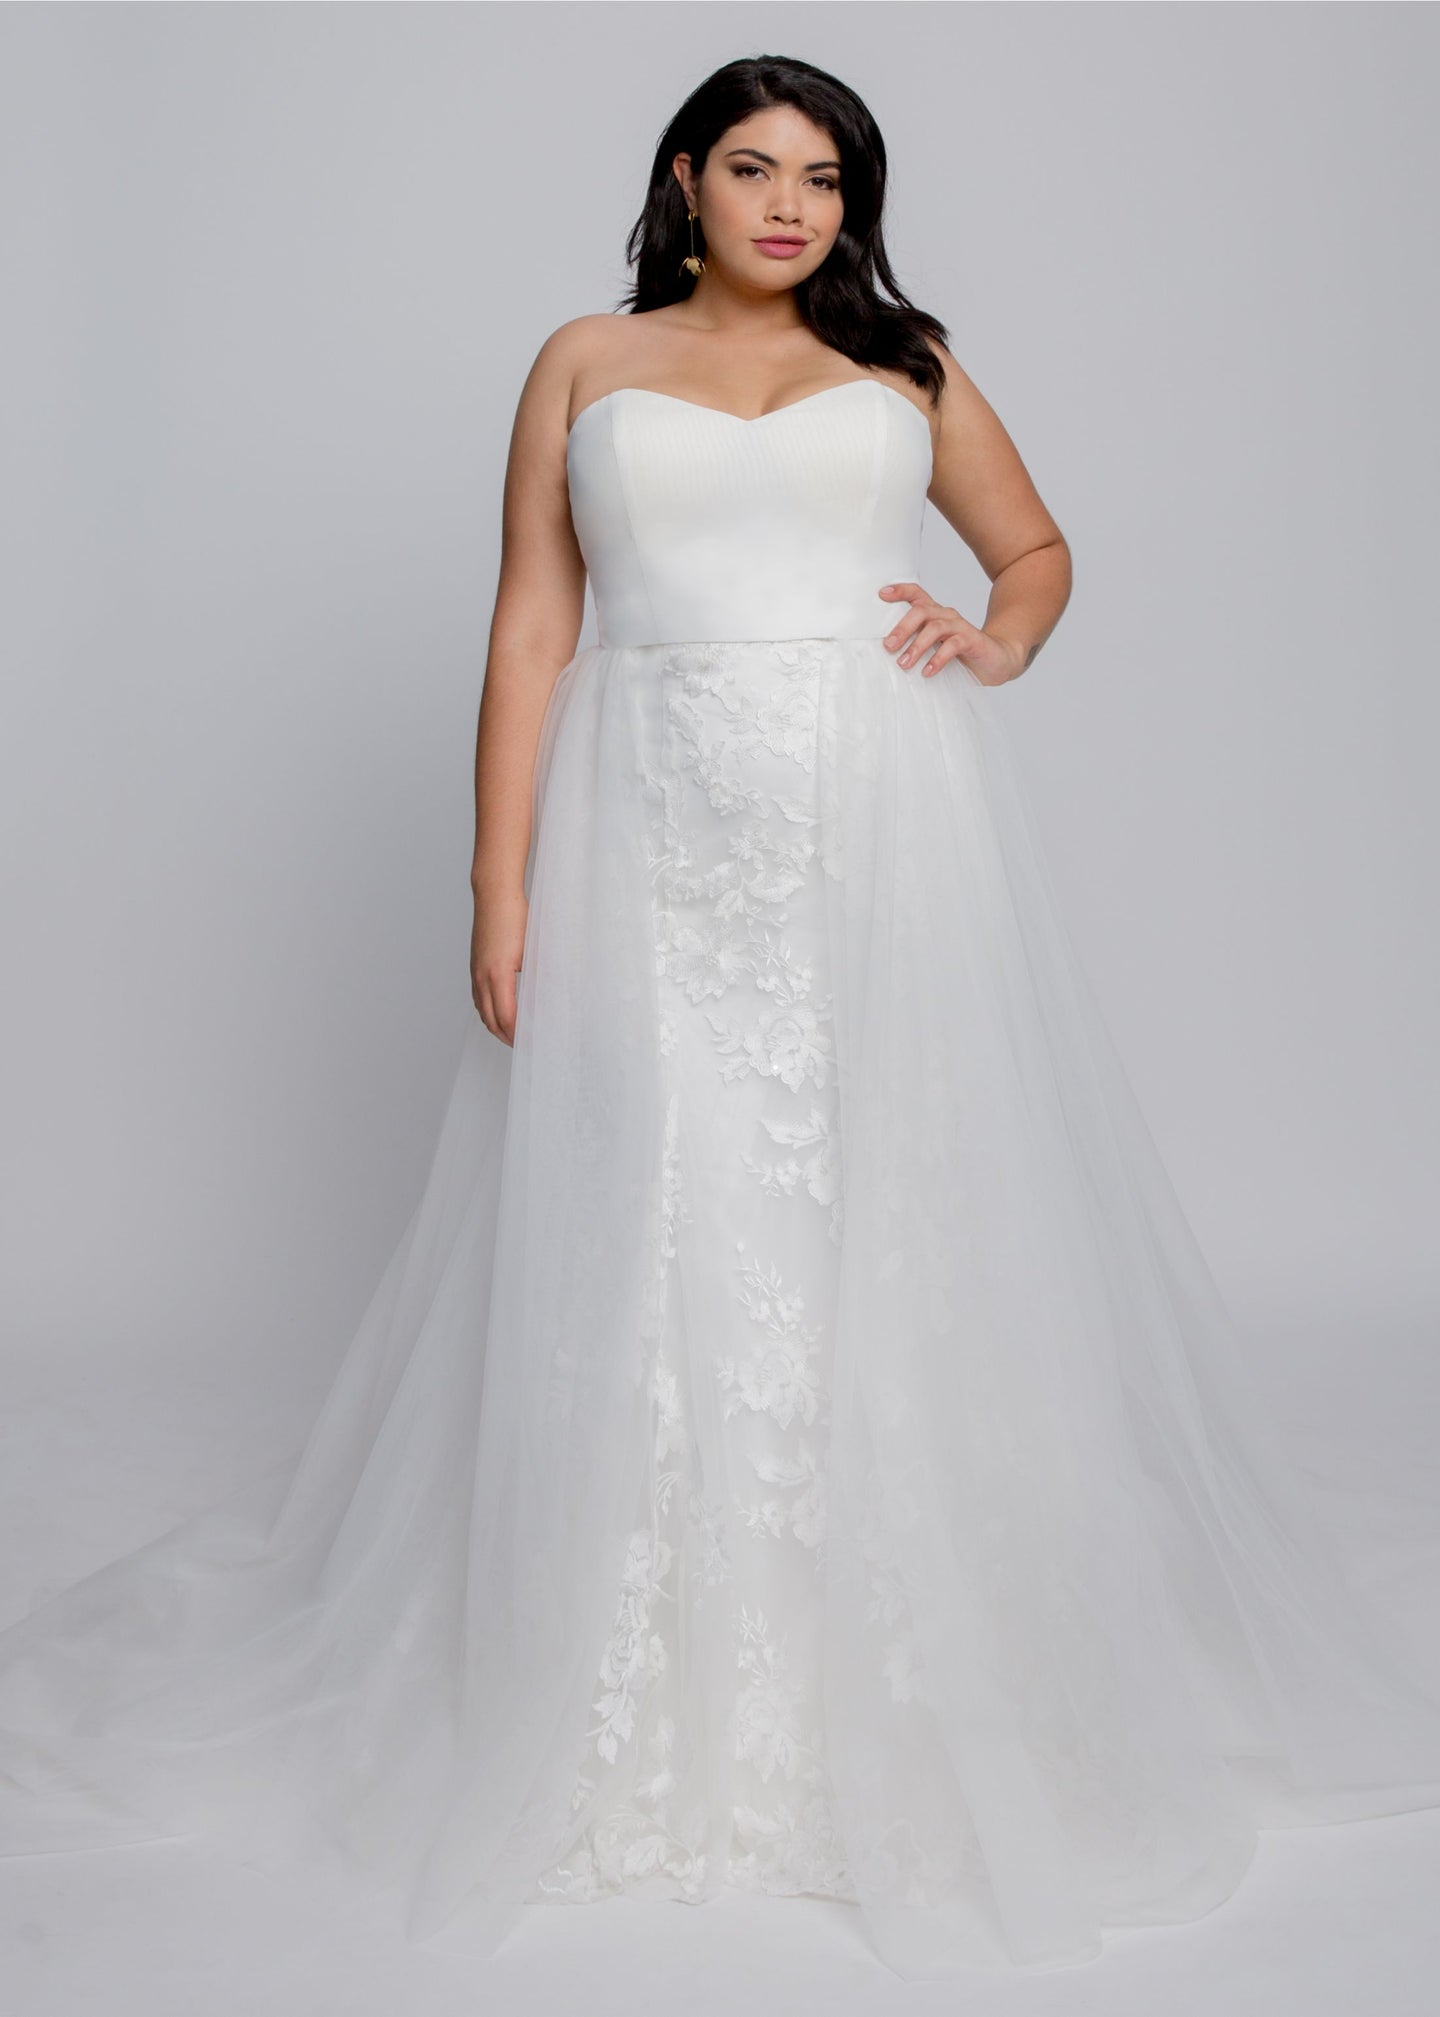 Gorgeous bridal gowns for all body shapes: plus size, curvy, or petite brides. Try on our wedding dresses at home. Size 0-30. Comfortable. Convenient. Fun. Lace or satin. Mermaid or A-line.  A classic sweetheart bustier combines with ethereal lace to create a classic wedding day look. The satin bustier and trumpet skirt bring classic elegance that is also very flattering. Floral lace in ivory over tulle add to the skirt.